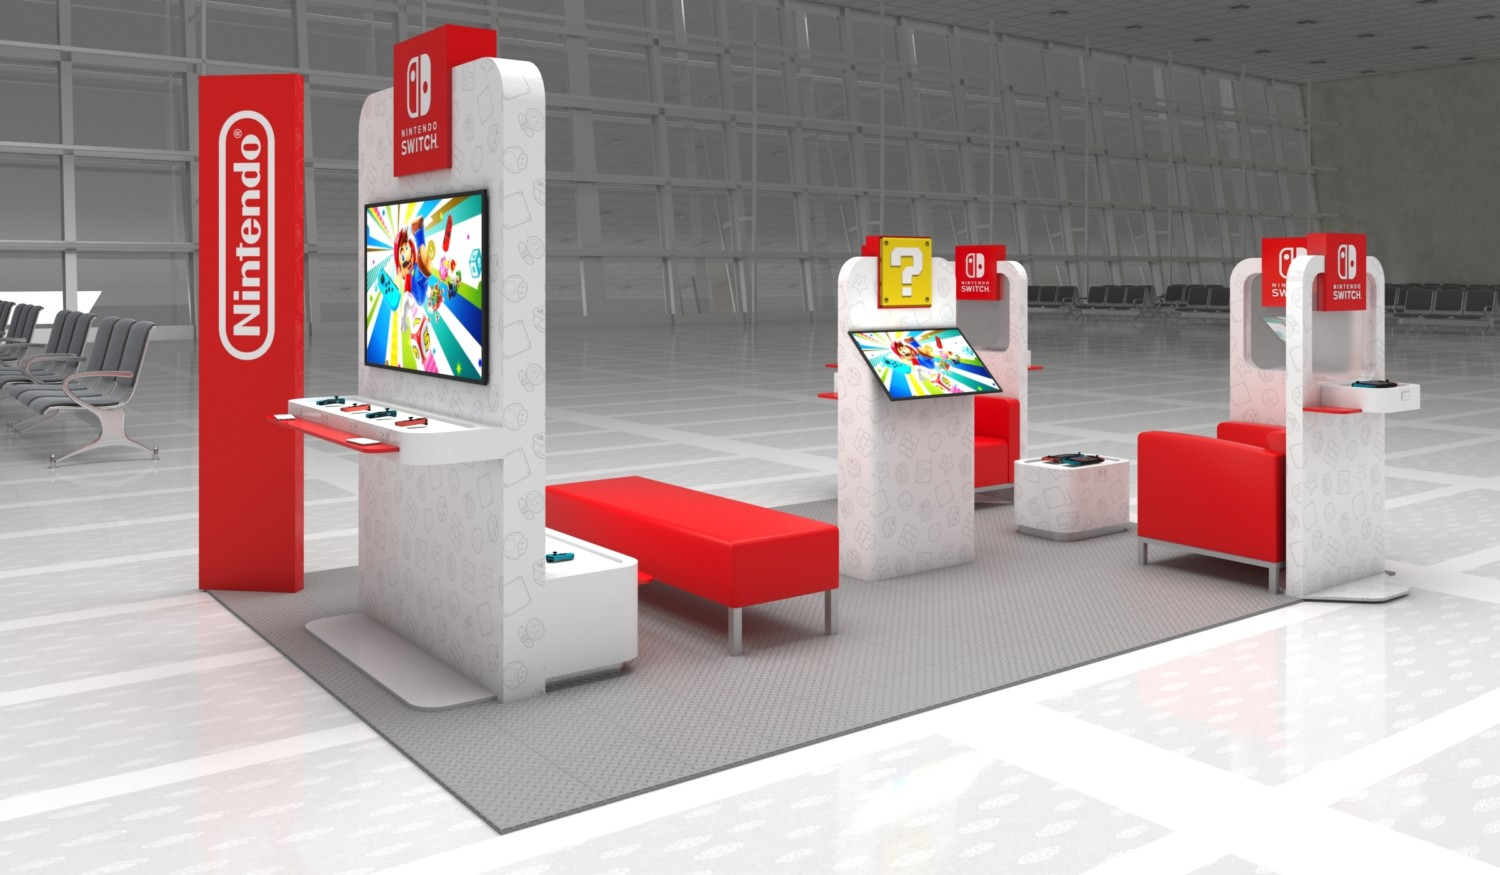 Resultado de imagen de nintendo switch washington airport